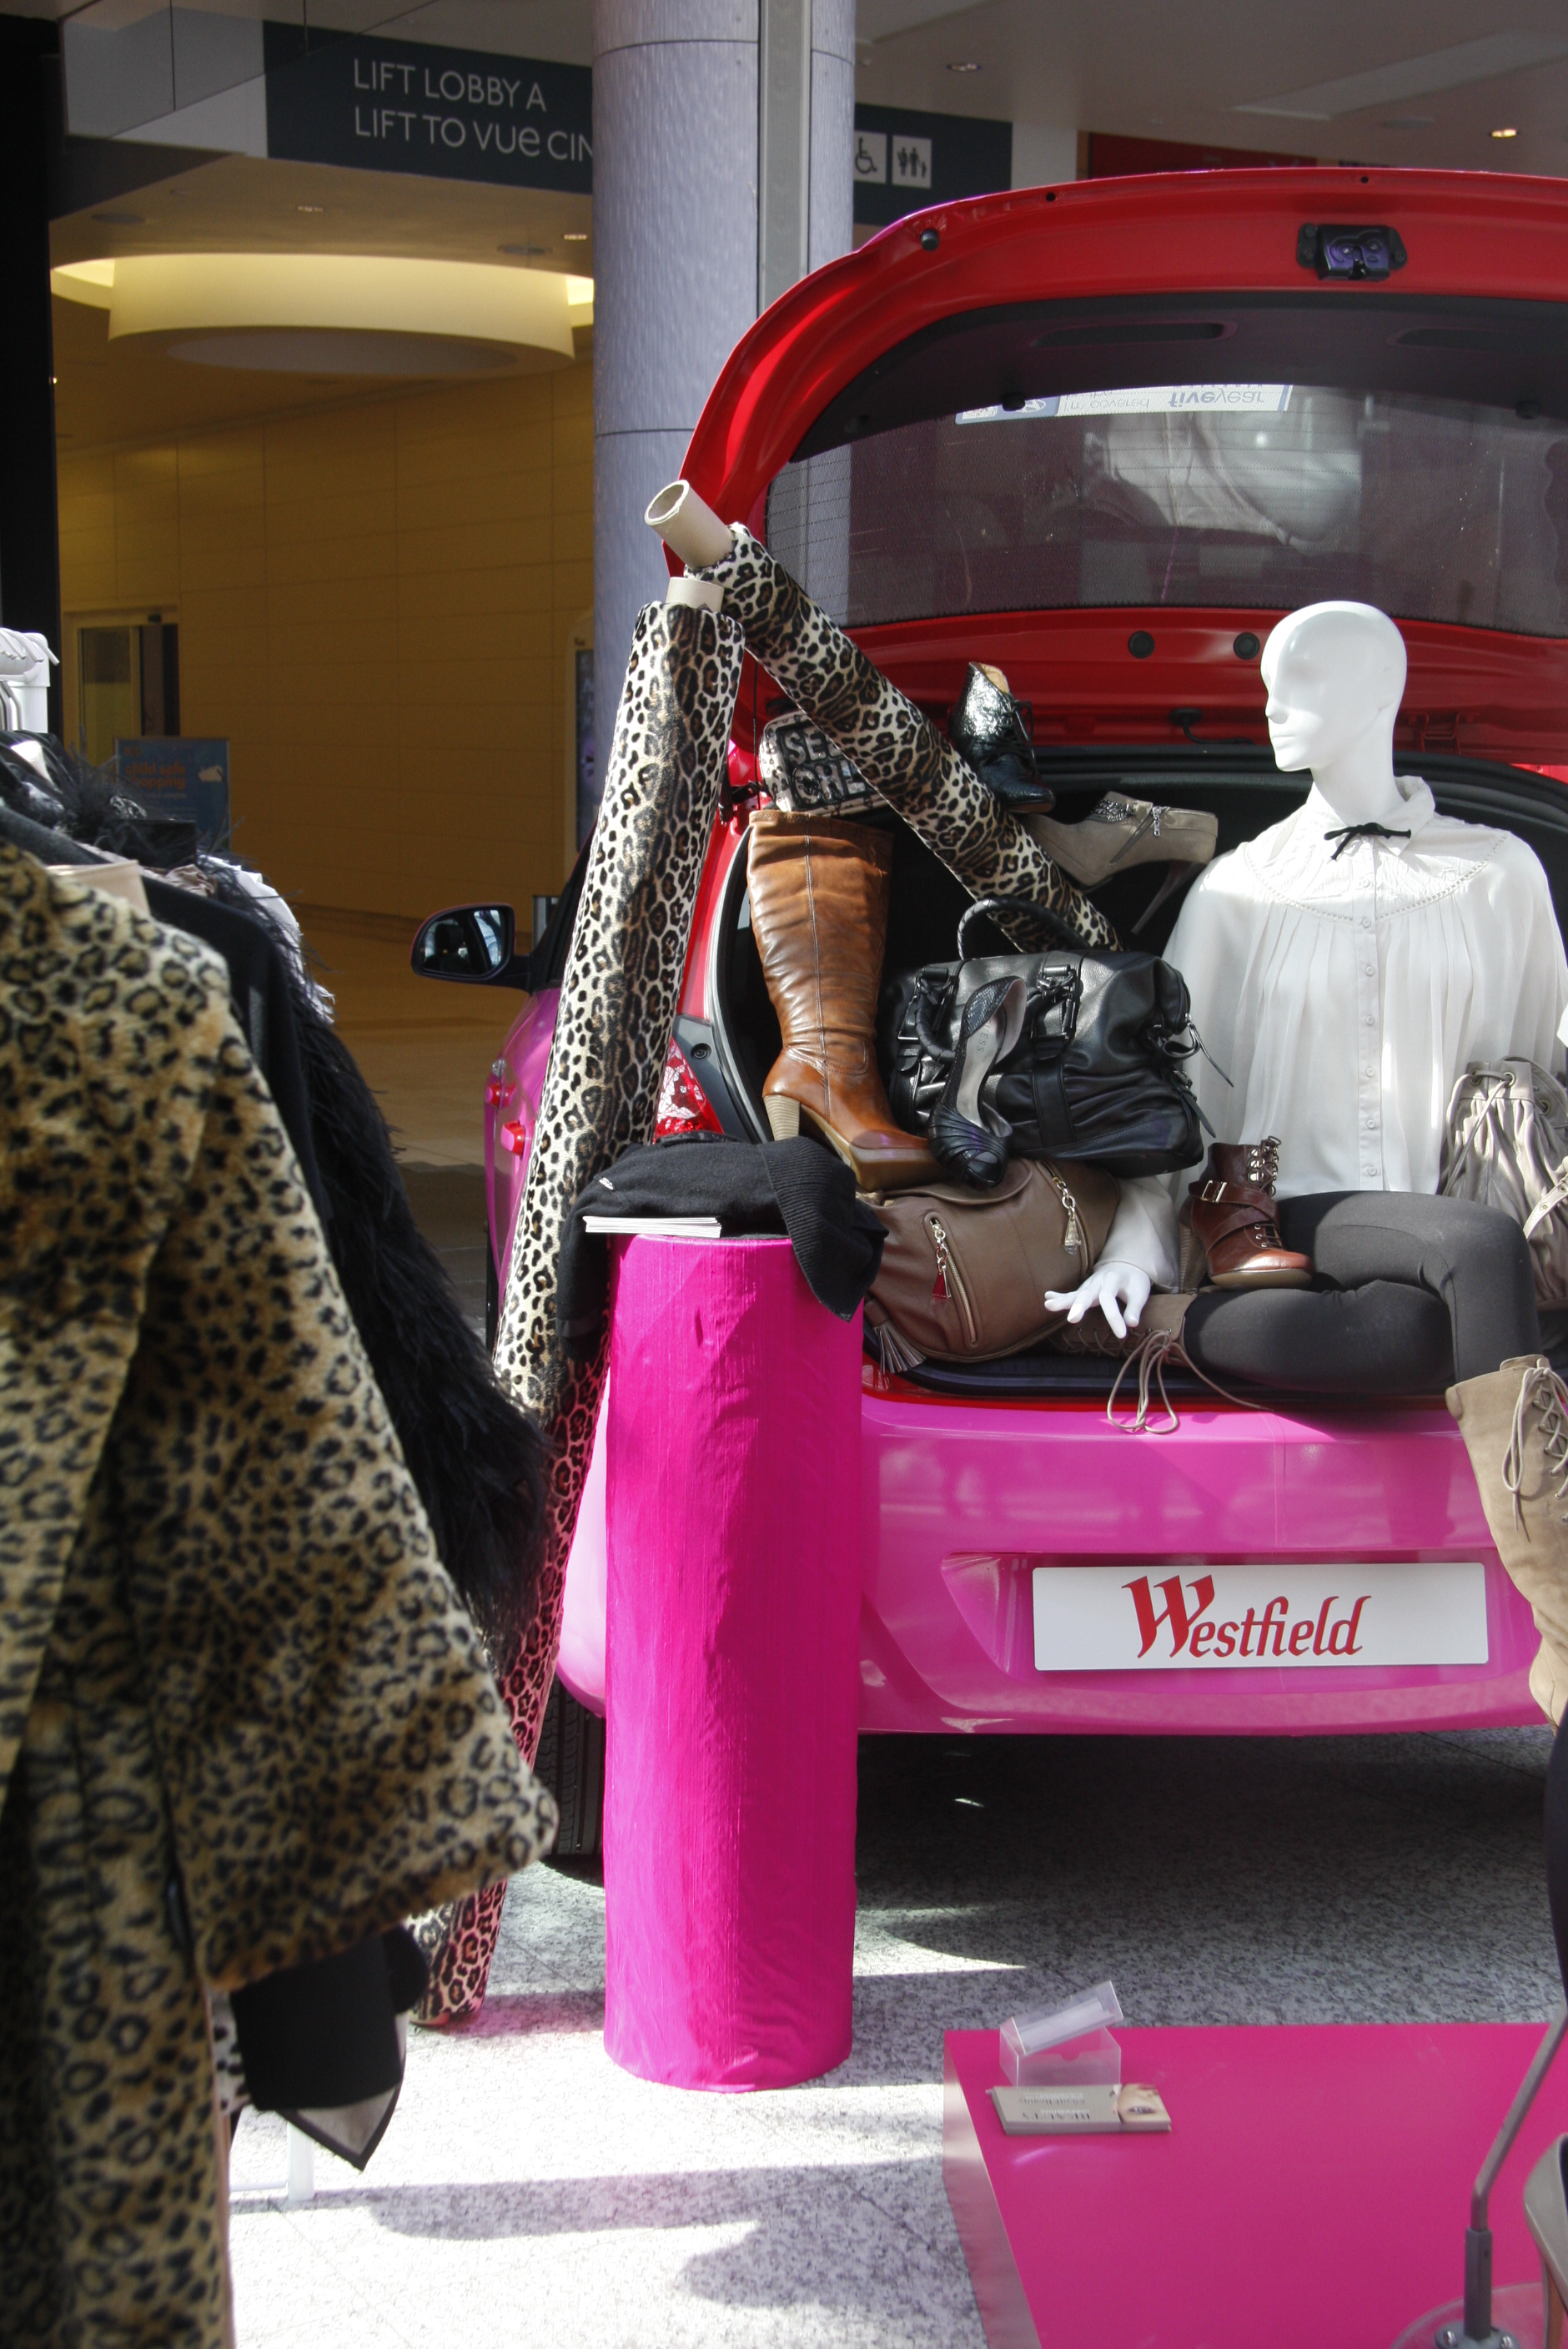 Westfield Shopping Car Boot Fashion